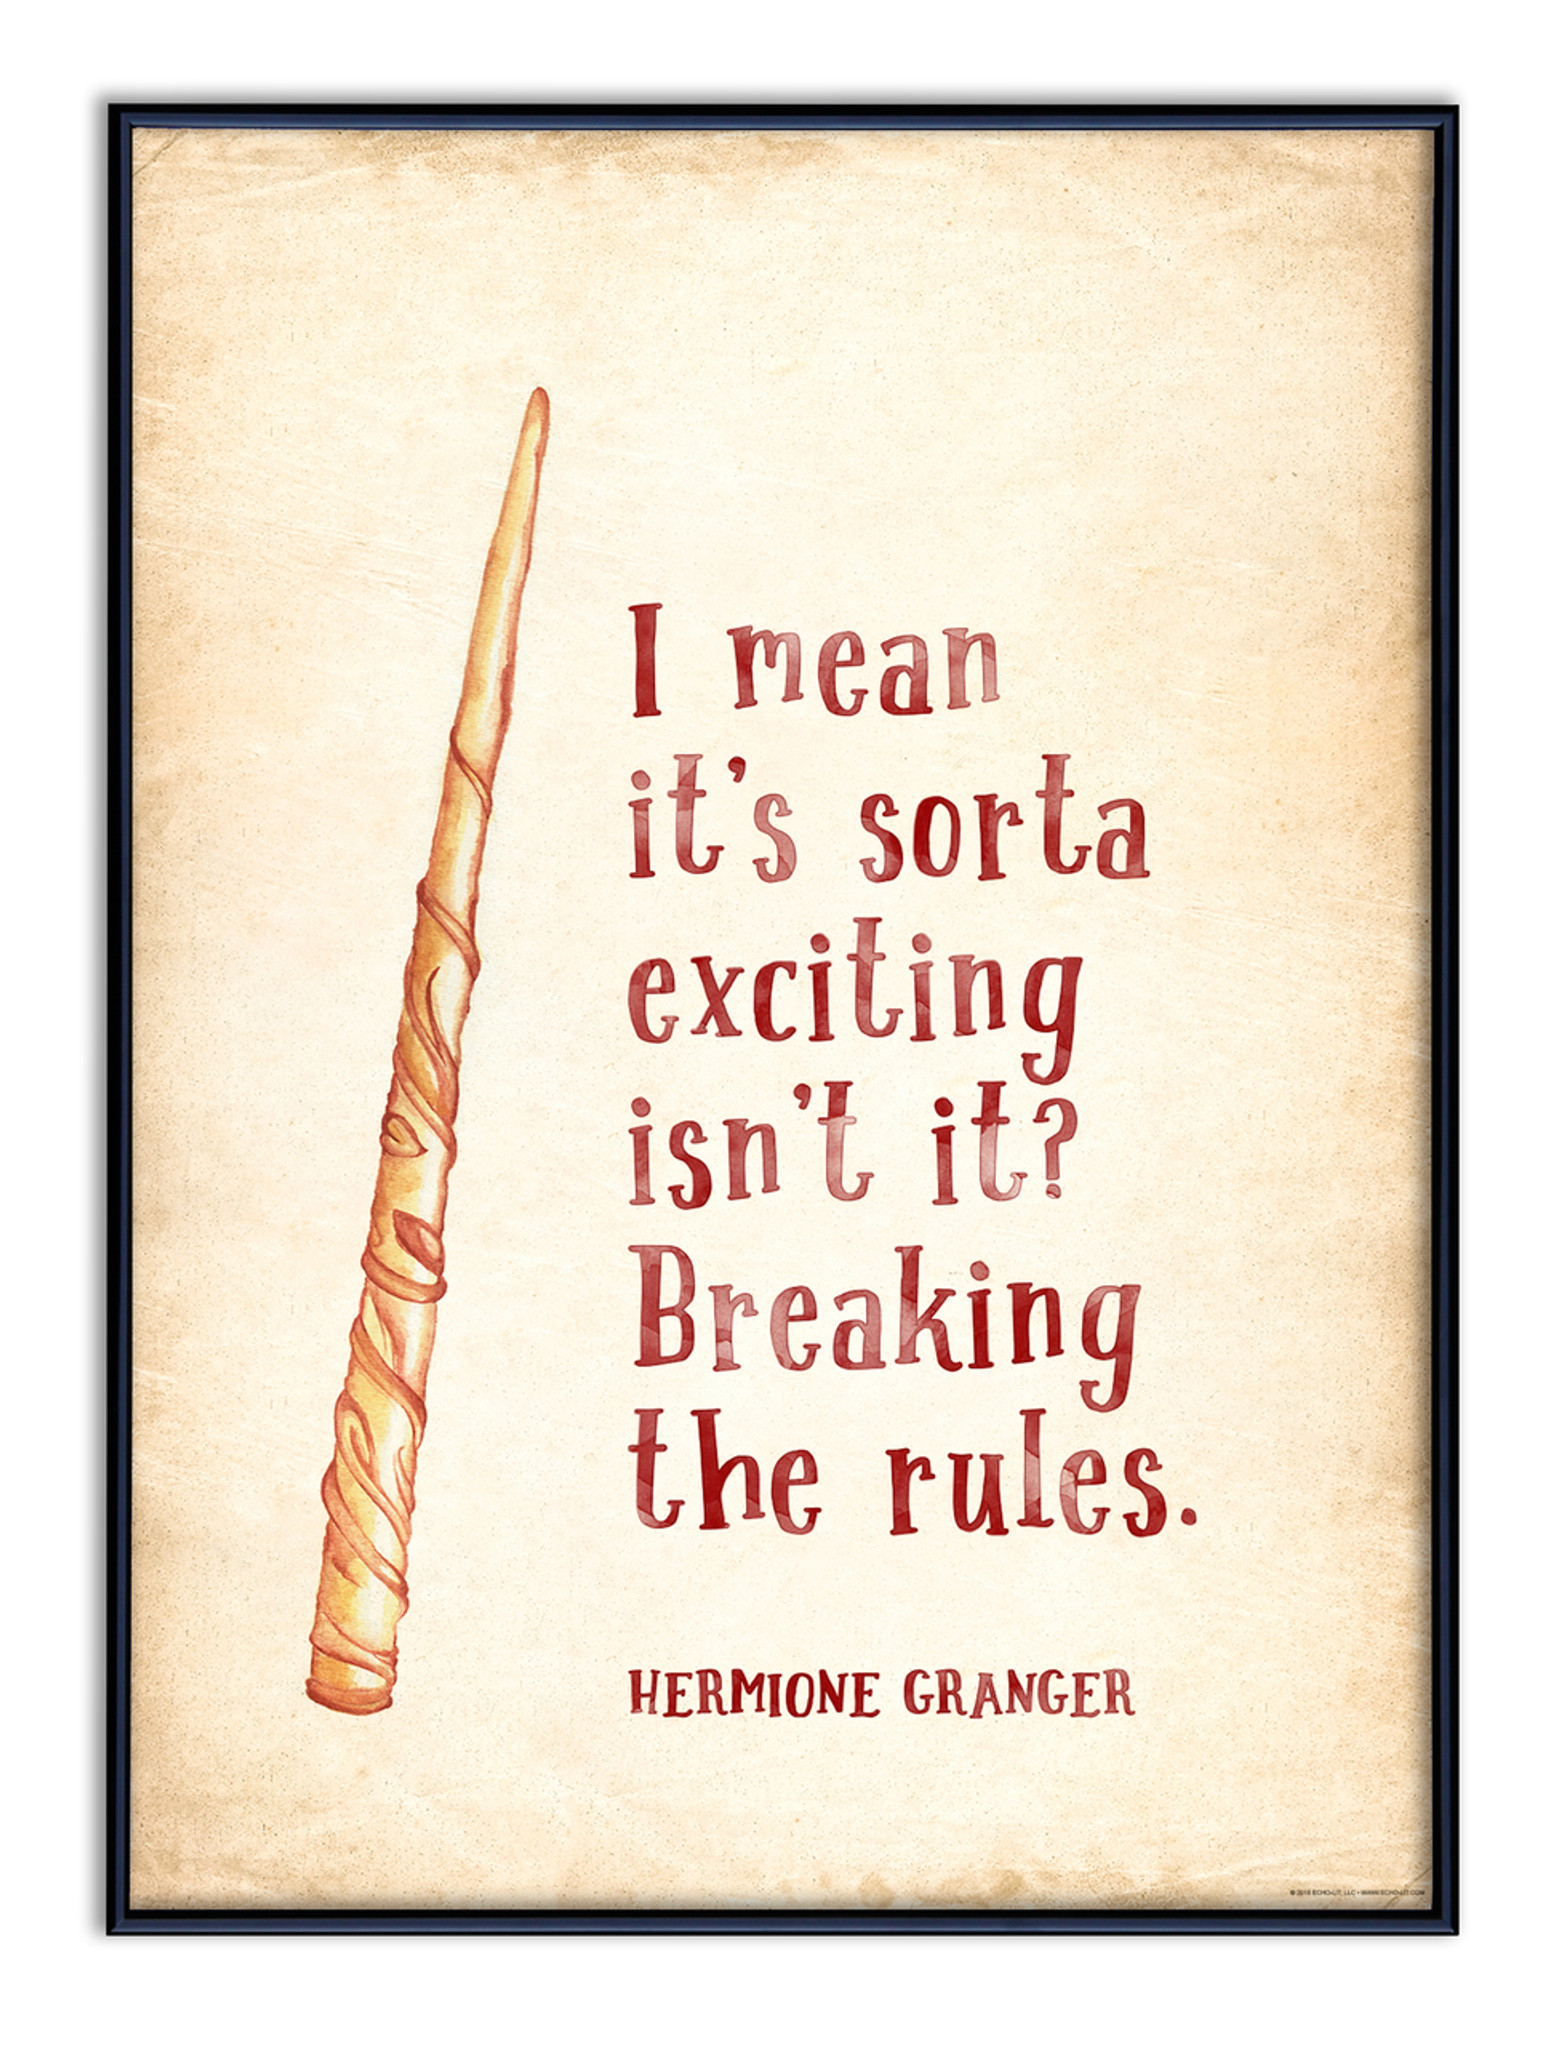 Harry Potter Quote Poster Set Of 3 Harry Ron Hermione Quotes